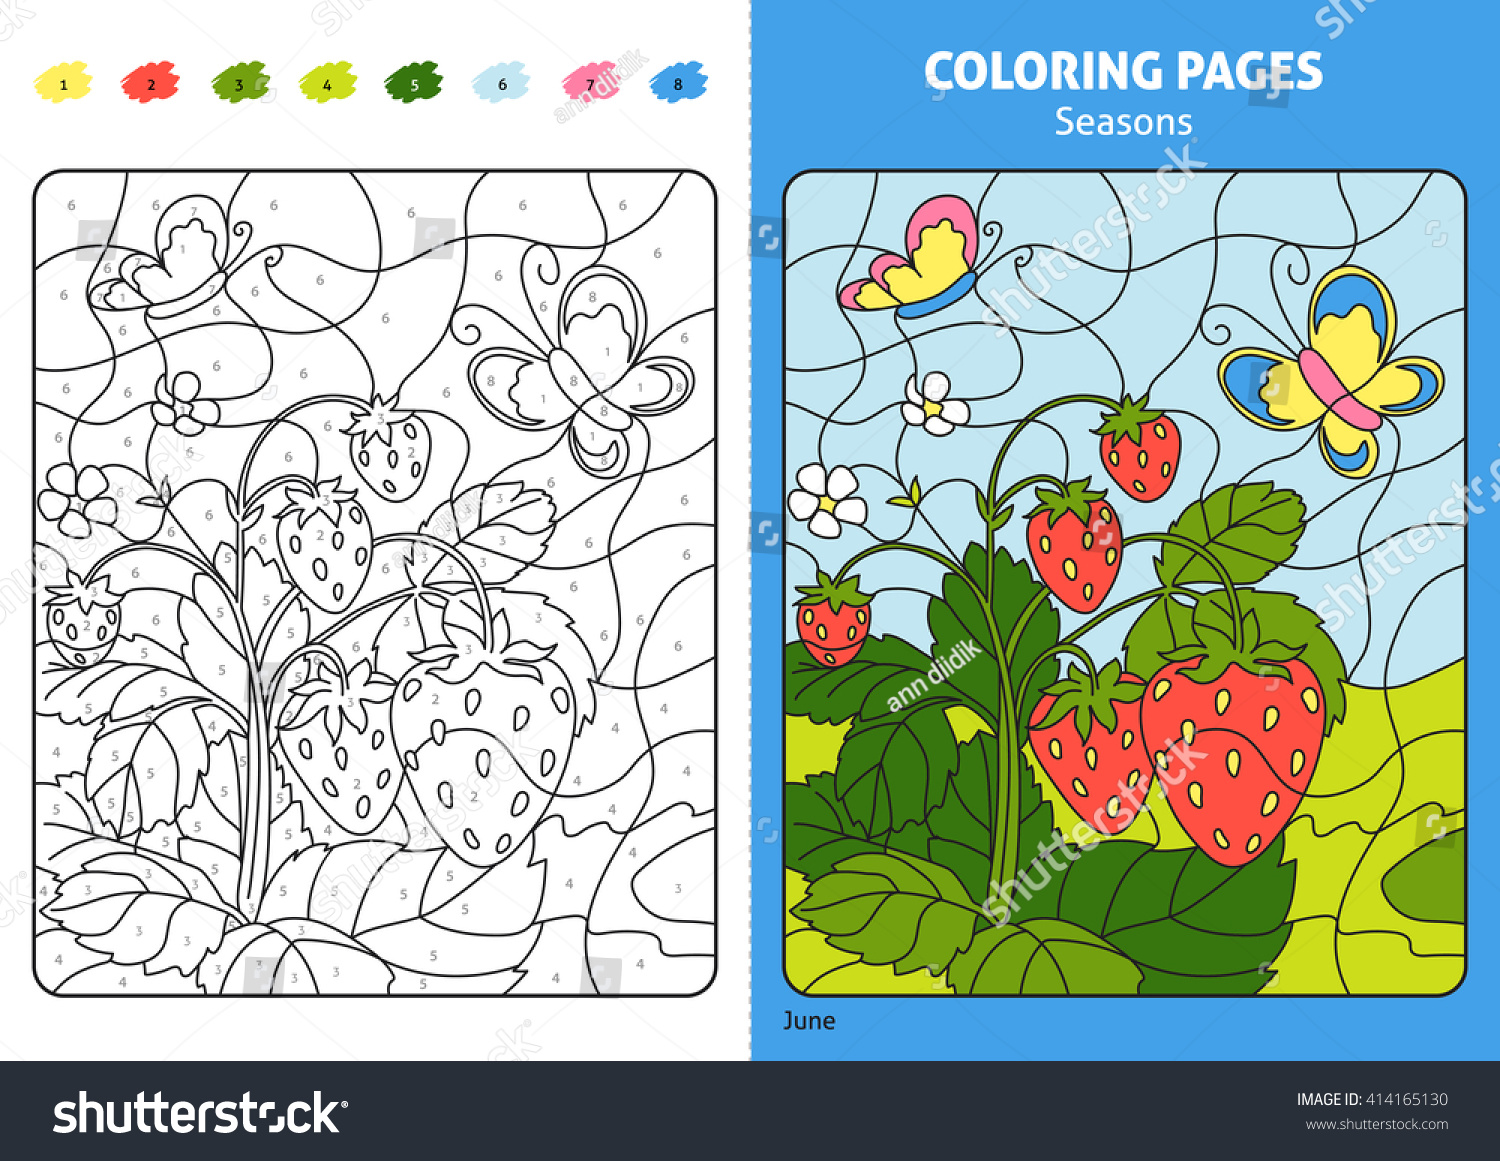 Seasons Coloring Page Kids June Month Stock Photo (Photo, Vector ...